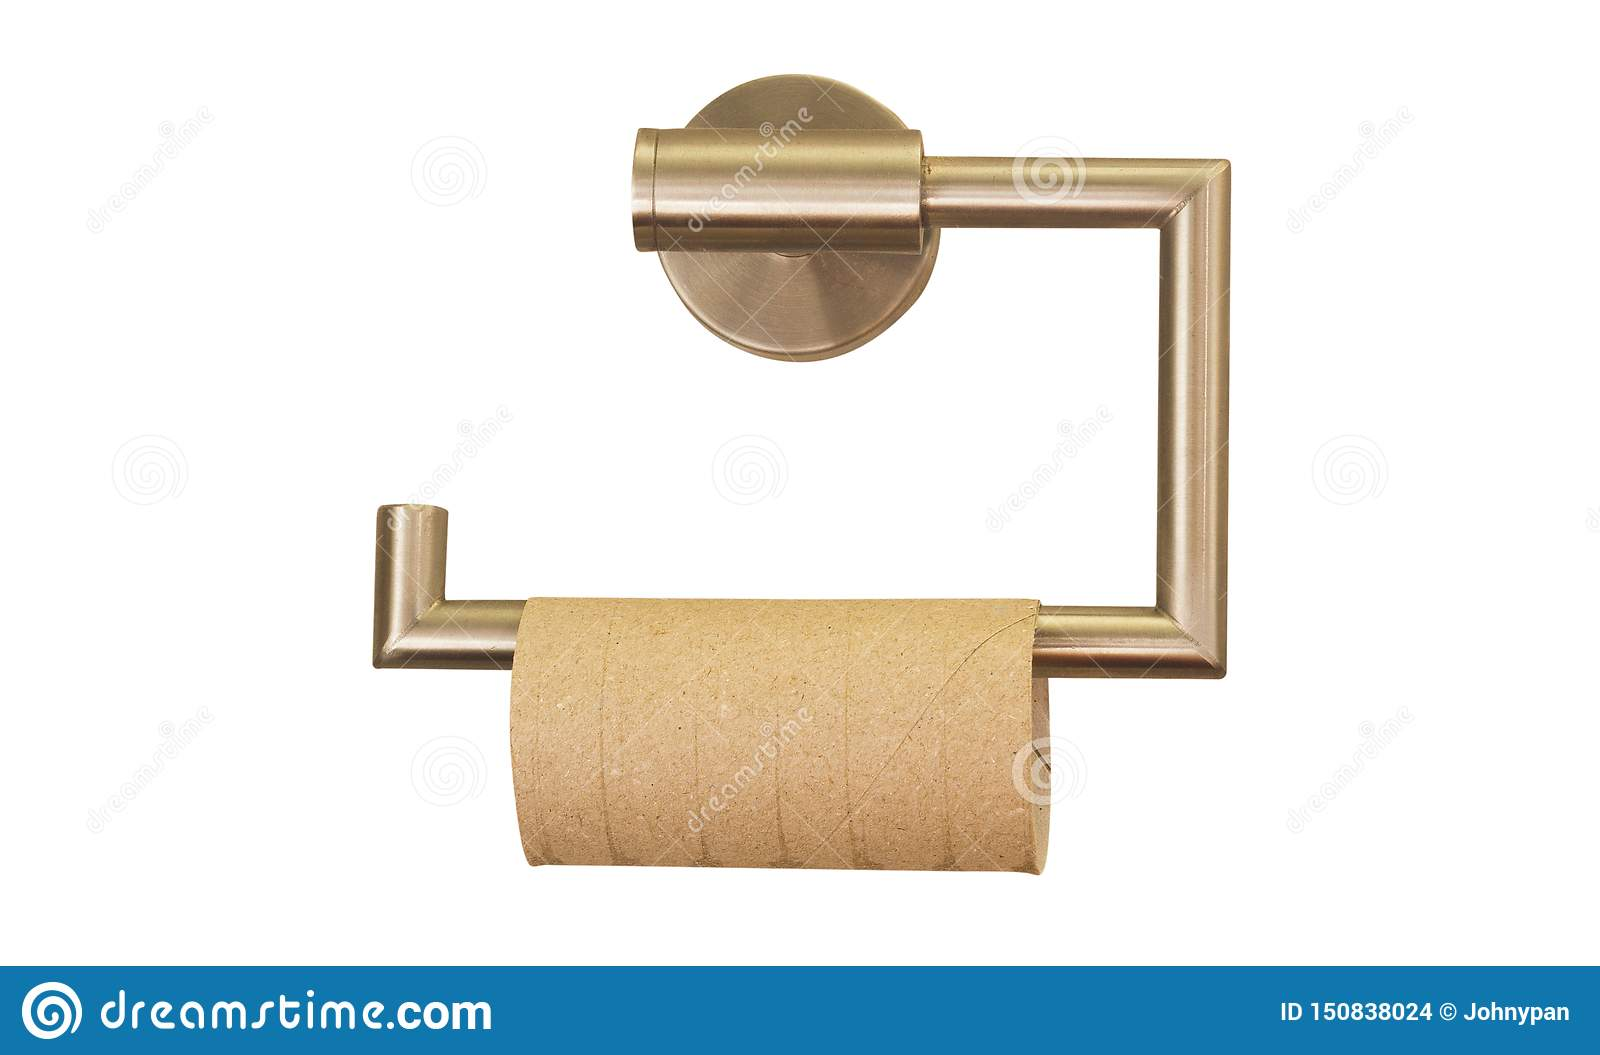 Empty roll of toilet paper in the bathroom